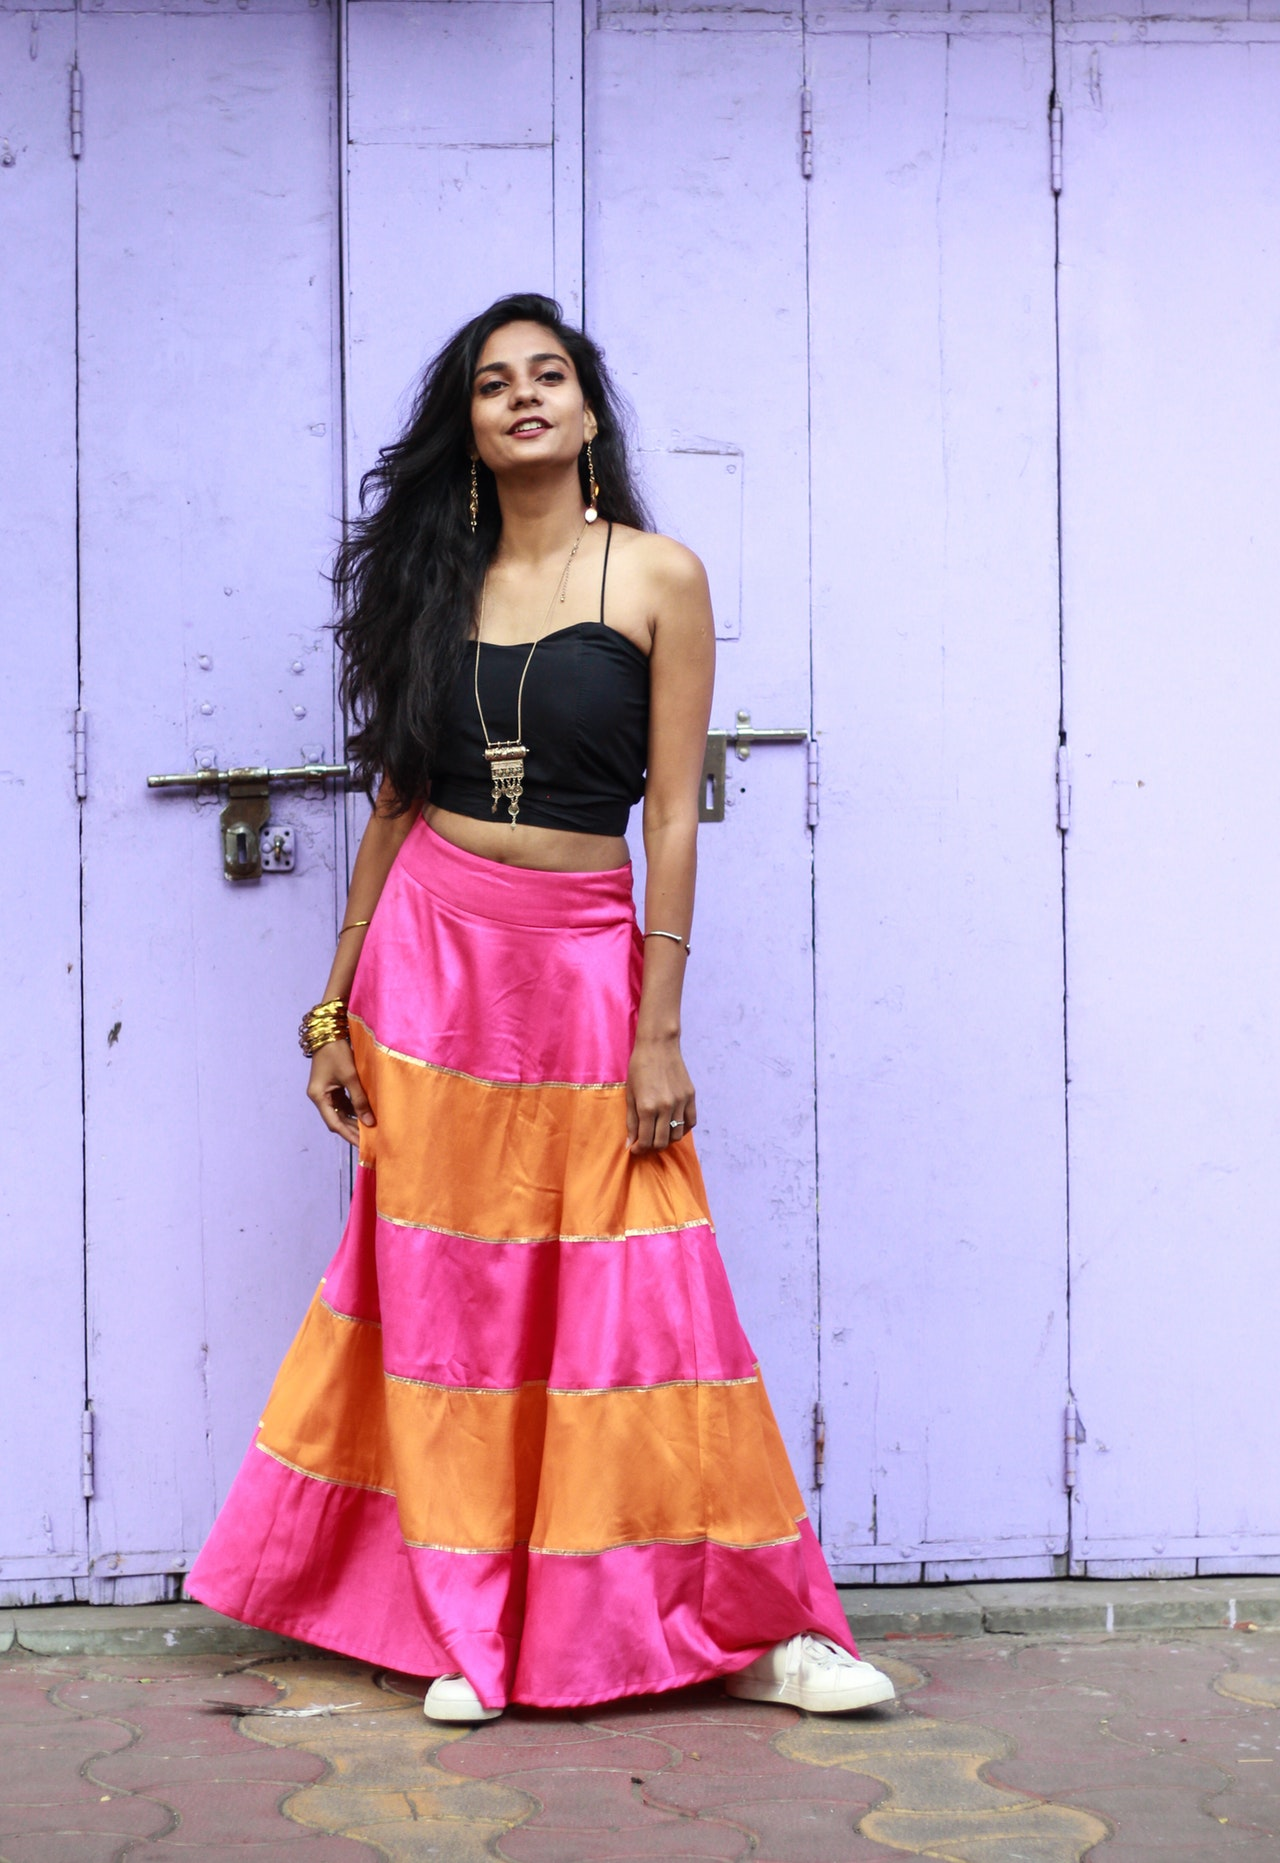 colorful outfit with long skirt